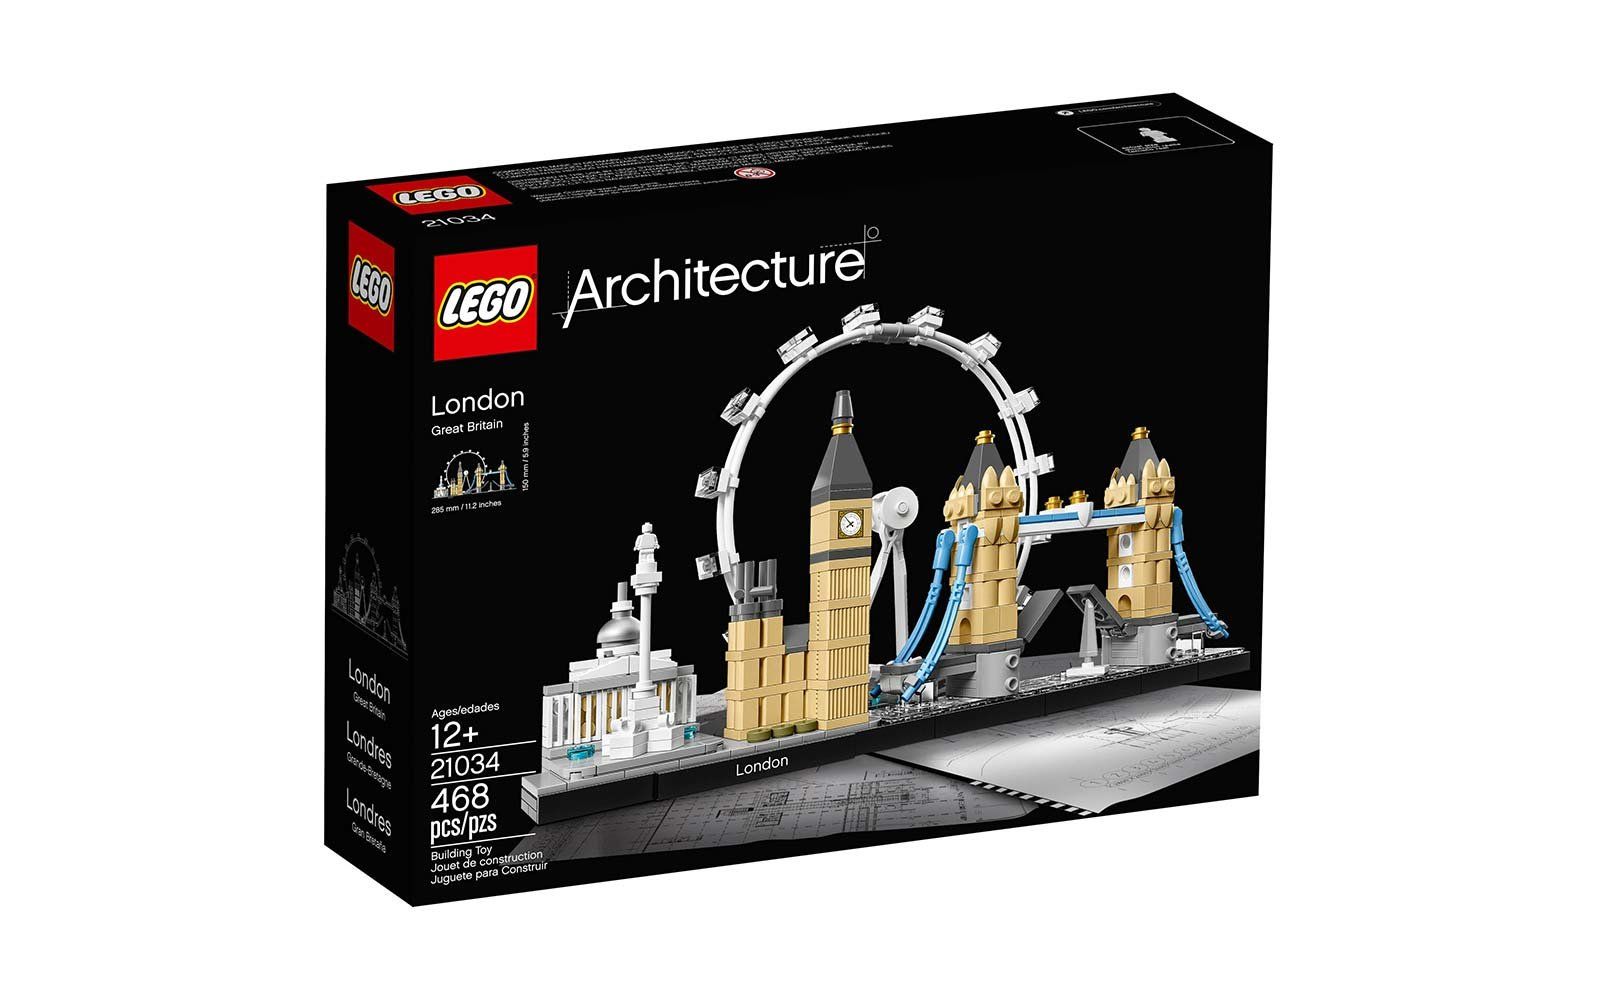 lego architecture toy set london